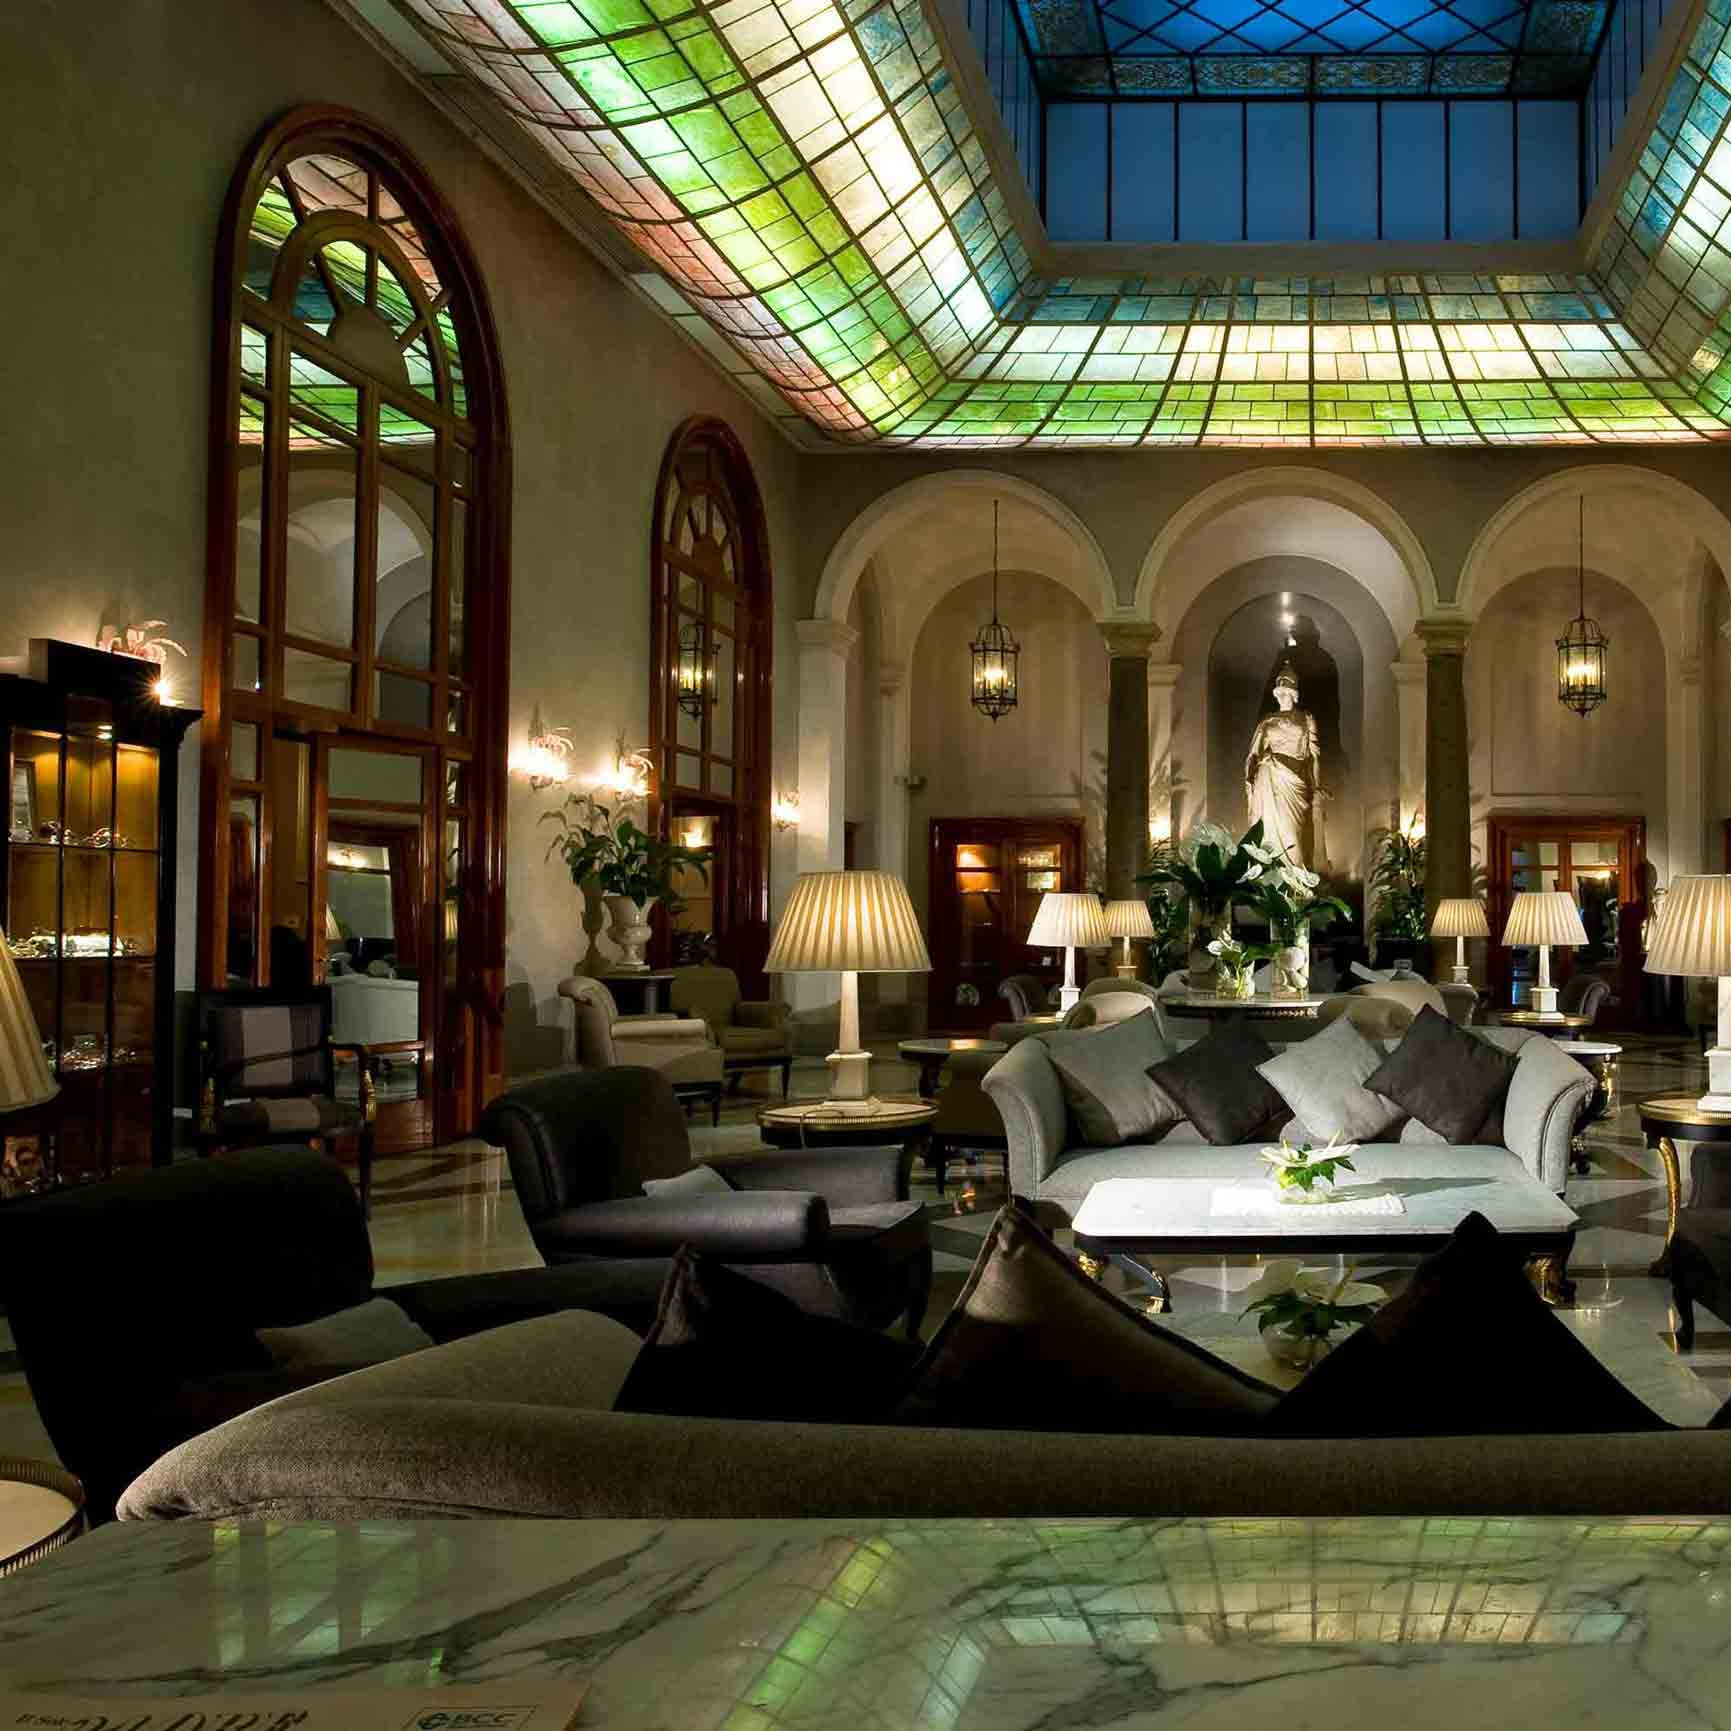 Grand Hotel de la Minerve Rome - Hotels in Rome | WorldHotels